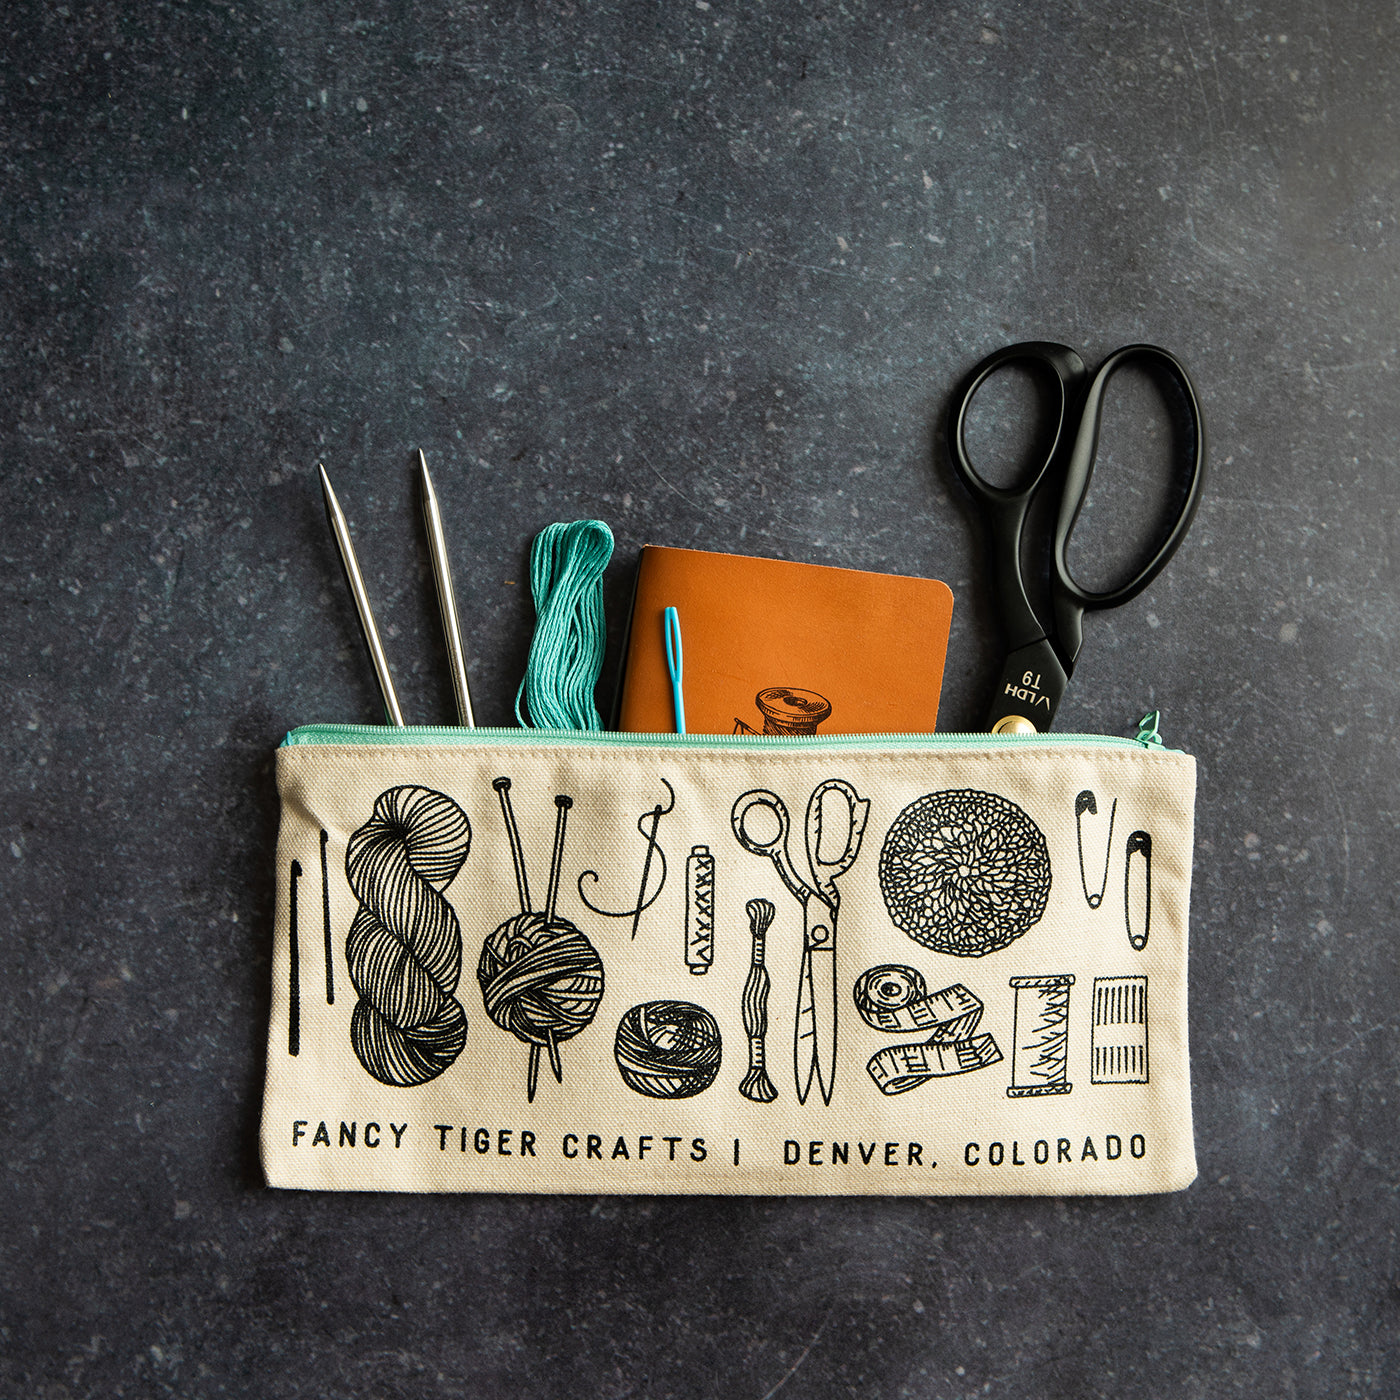 This is an image of a zipper pouch against a granite counter top with scissors, a notebook and other sewing tools sticking out of the top